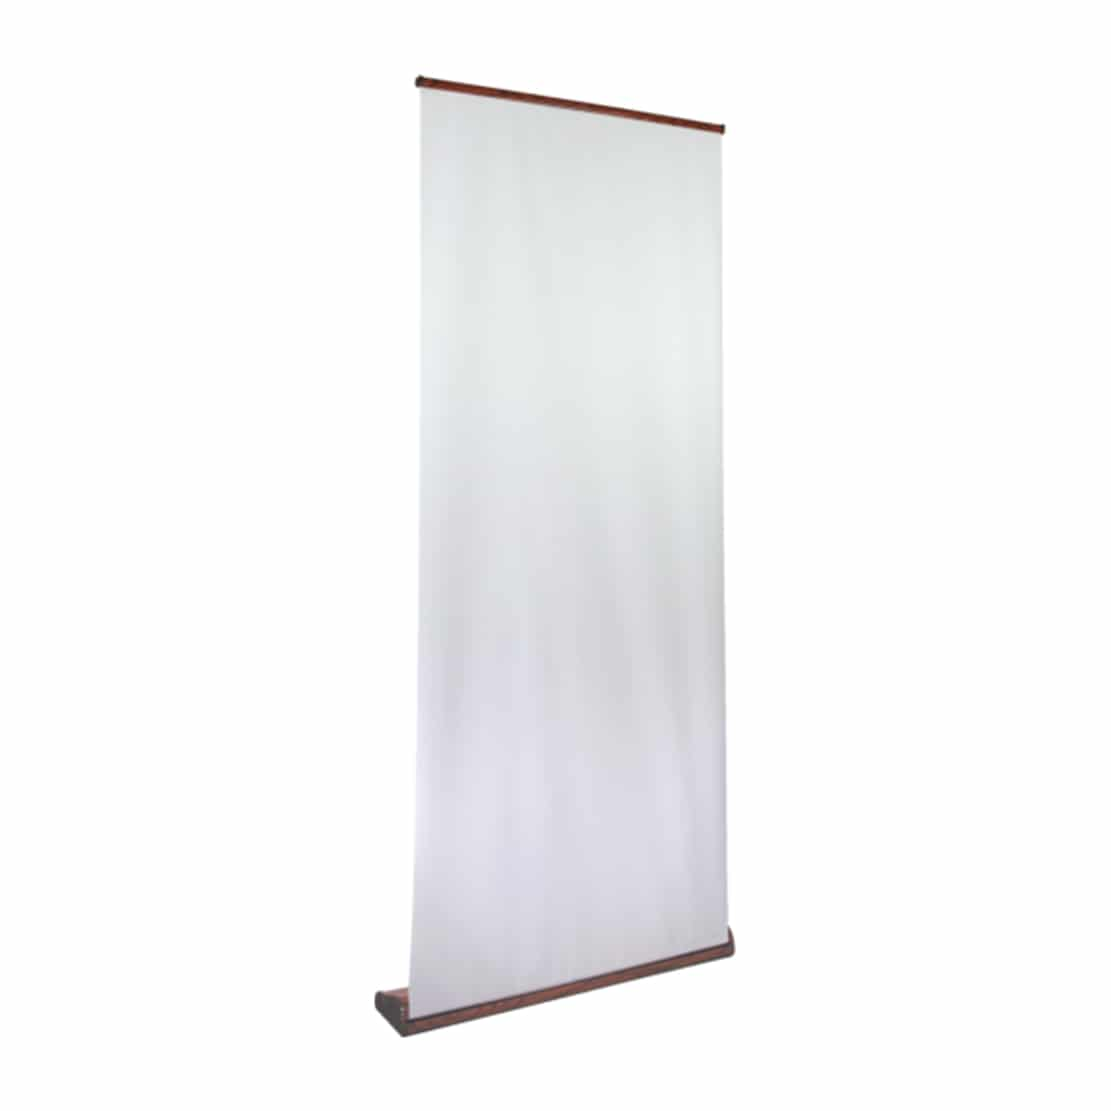 organic high quality wood grain banner stand display front view with unprinted graphic